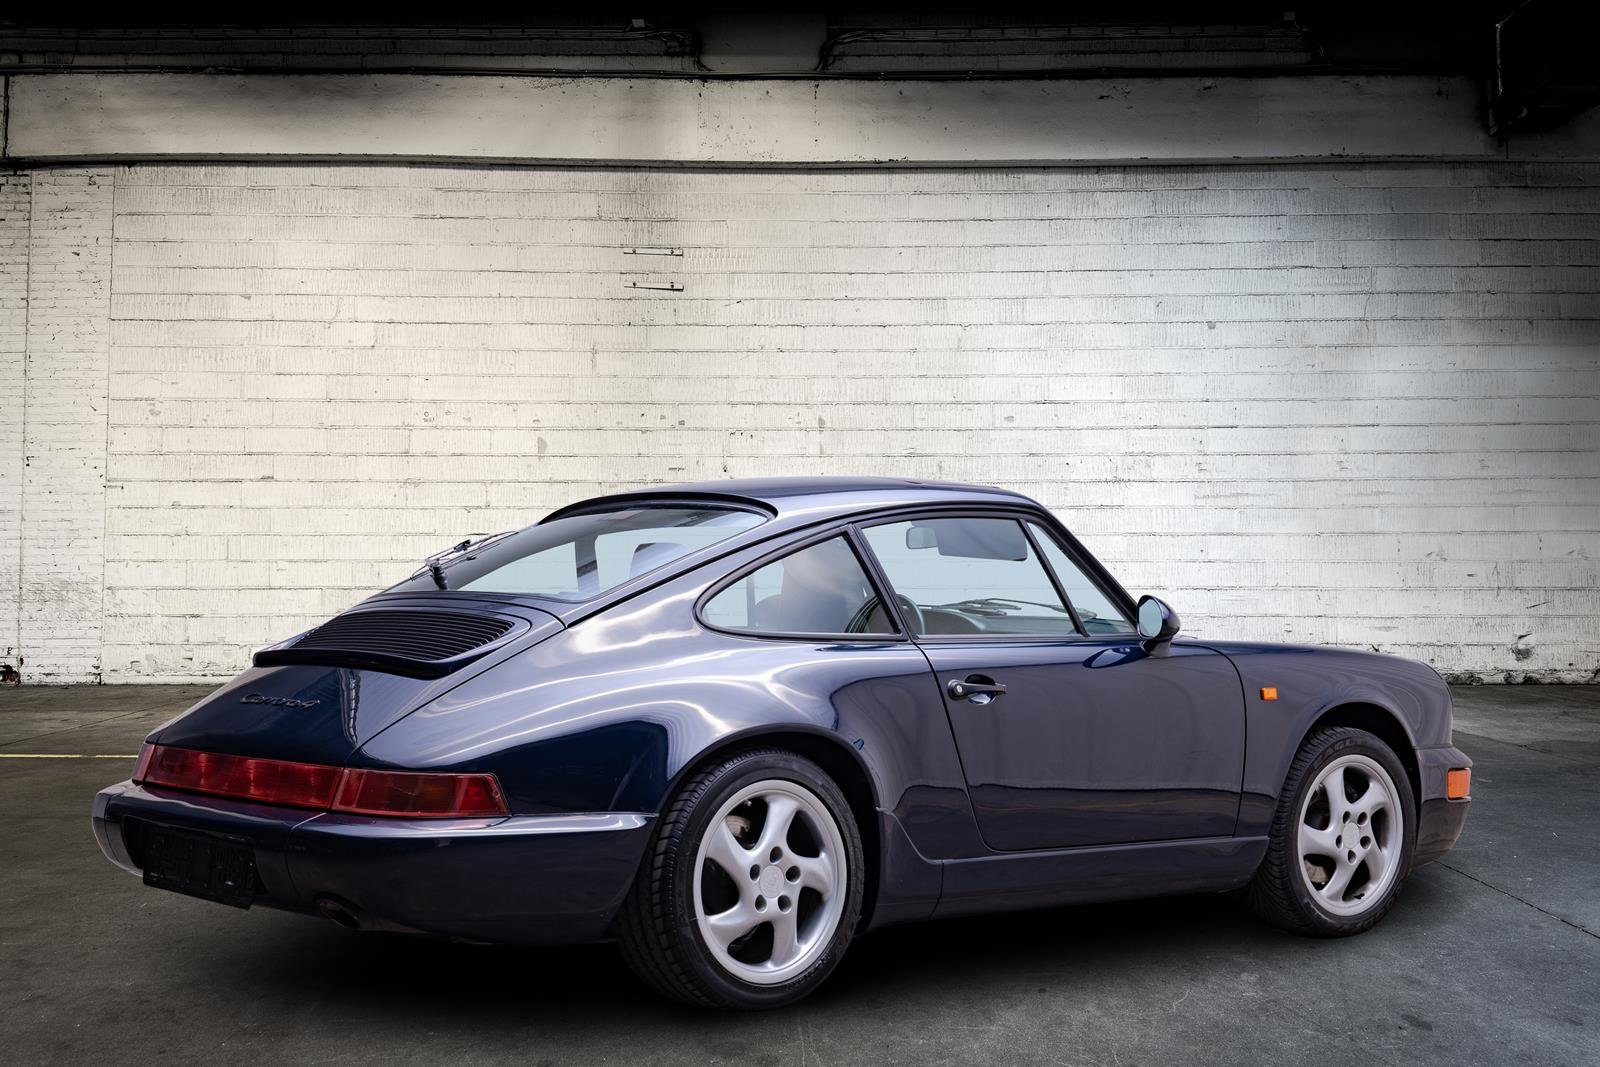 Porsche Carrera 4 3,6L 1989 For Sale (picture 2 of 6)